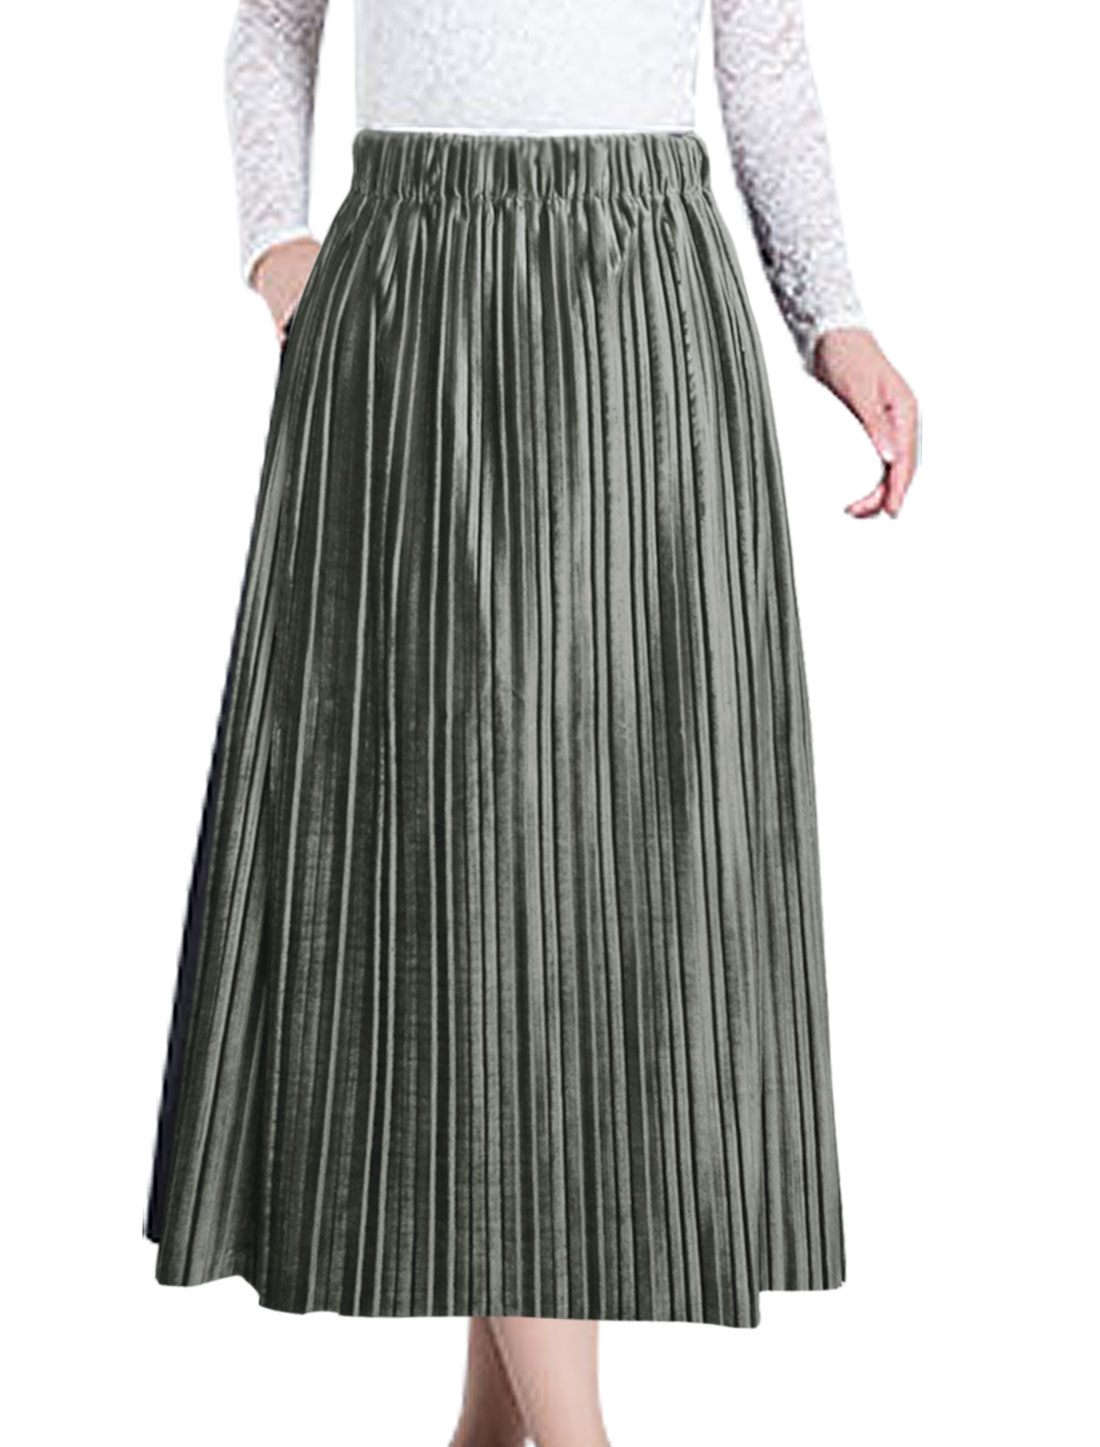 Ladies Unlined Elastic High Waist Pleated Mid-Calf Skirt Gray XS